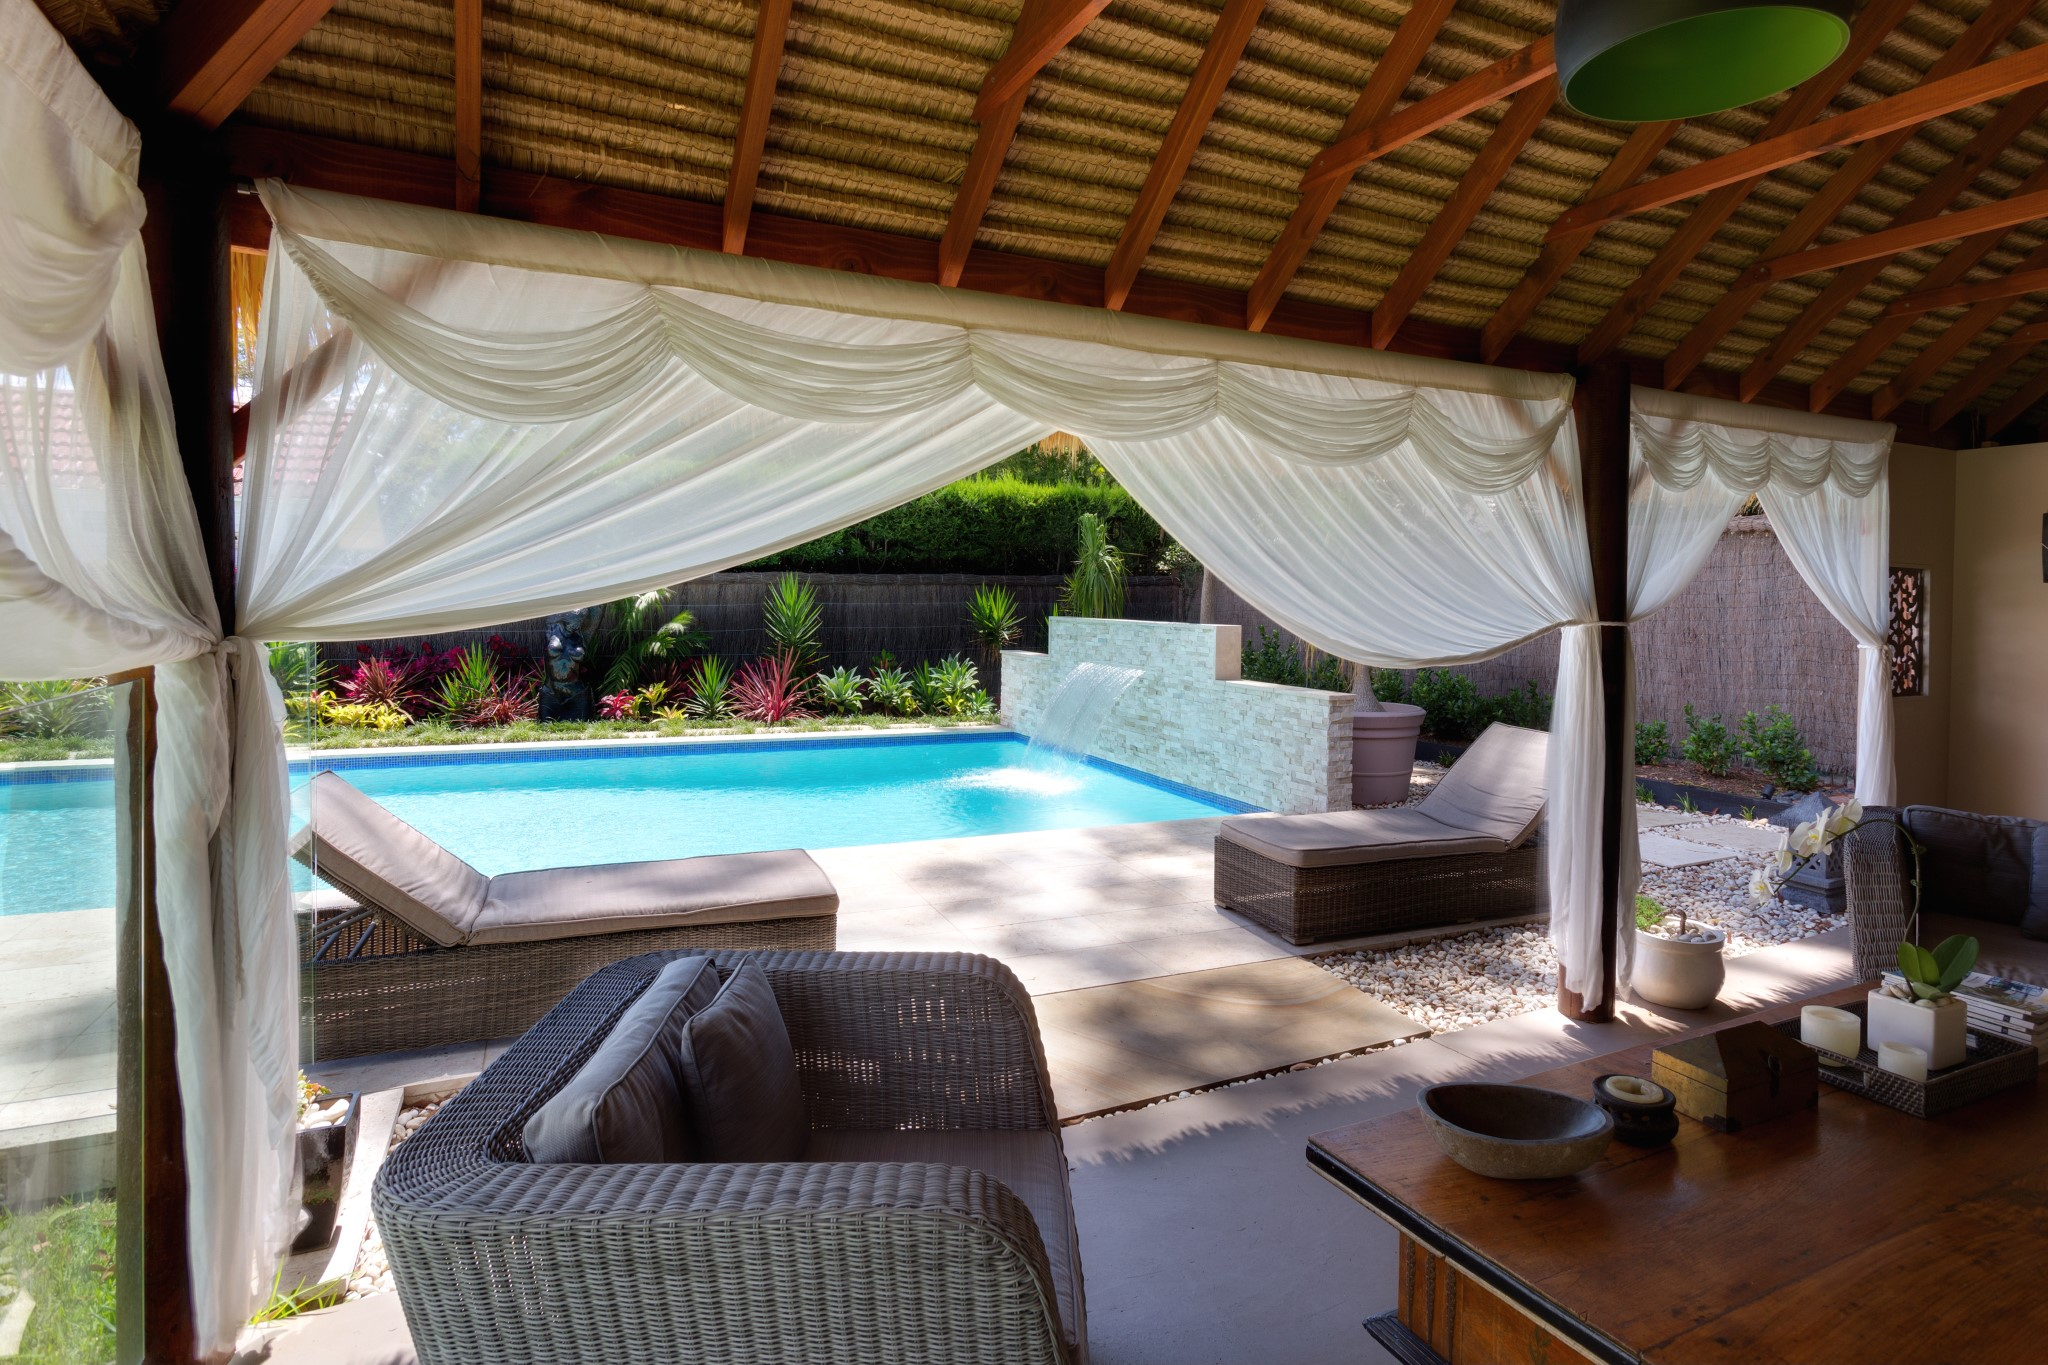 Modern Water Features of lap swimming pool of the luxury house